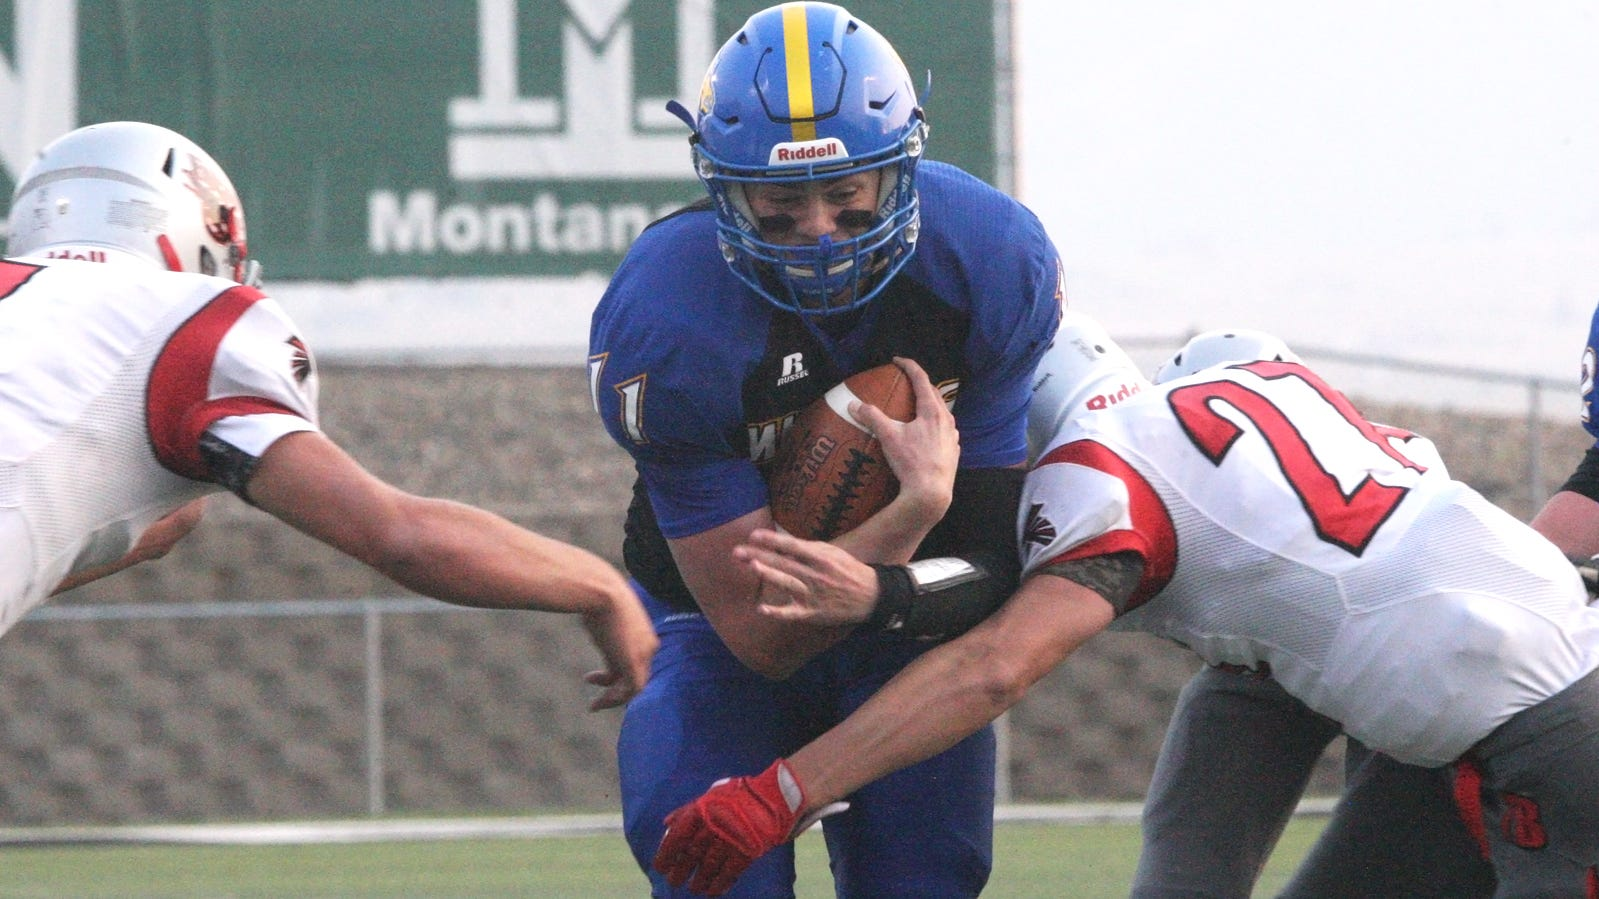 Great Falls Central meets Flint Creek Saturday afternoon at 1 at Naranche Stadium in Butte